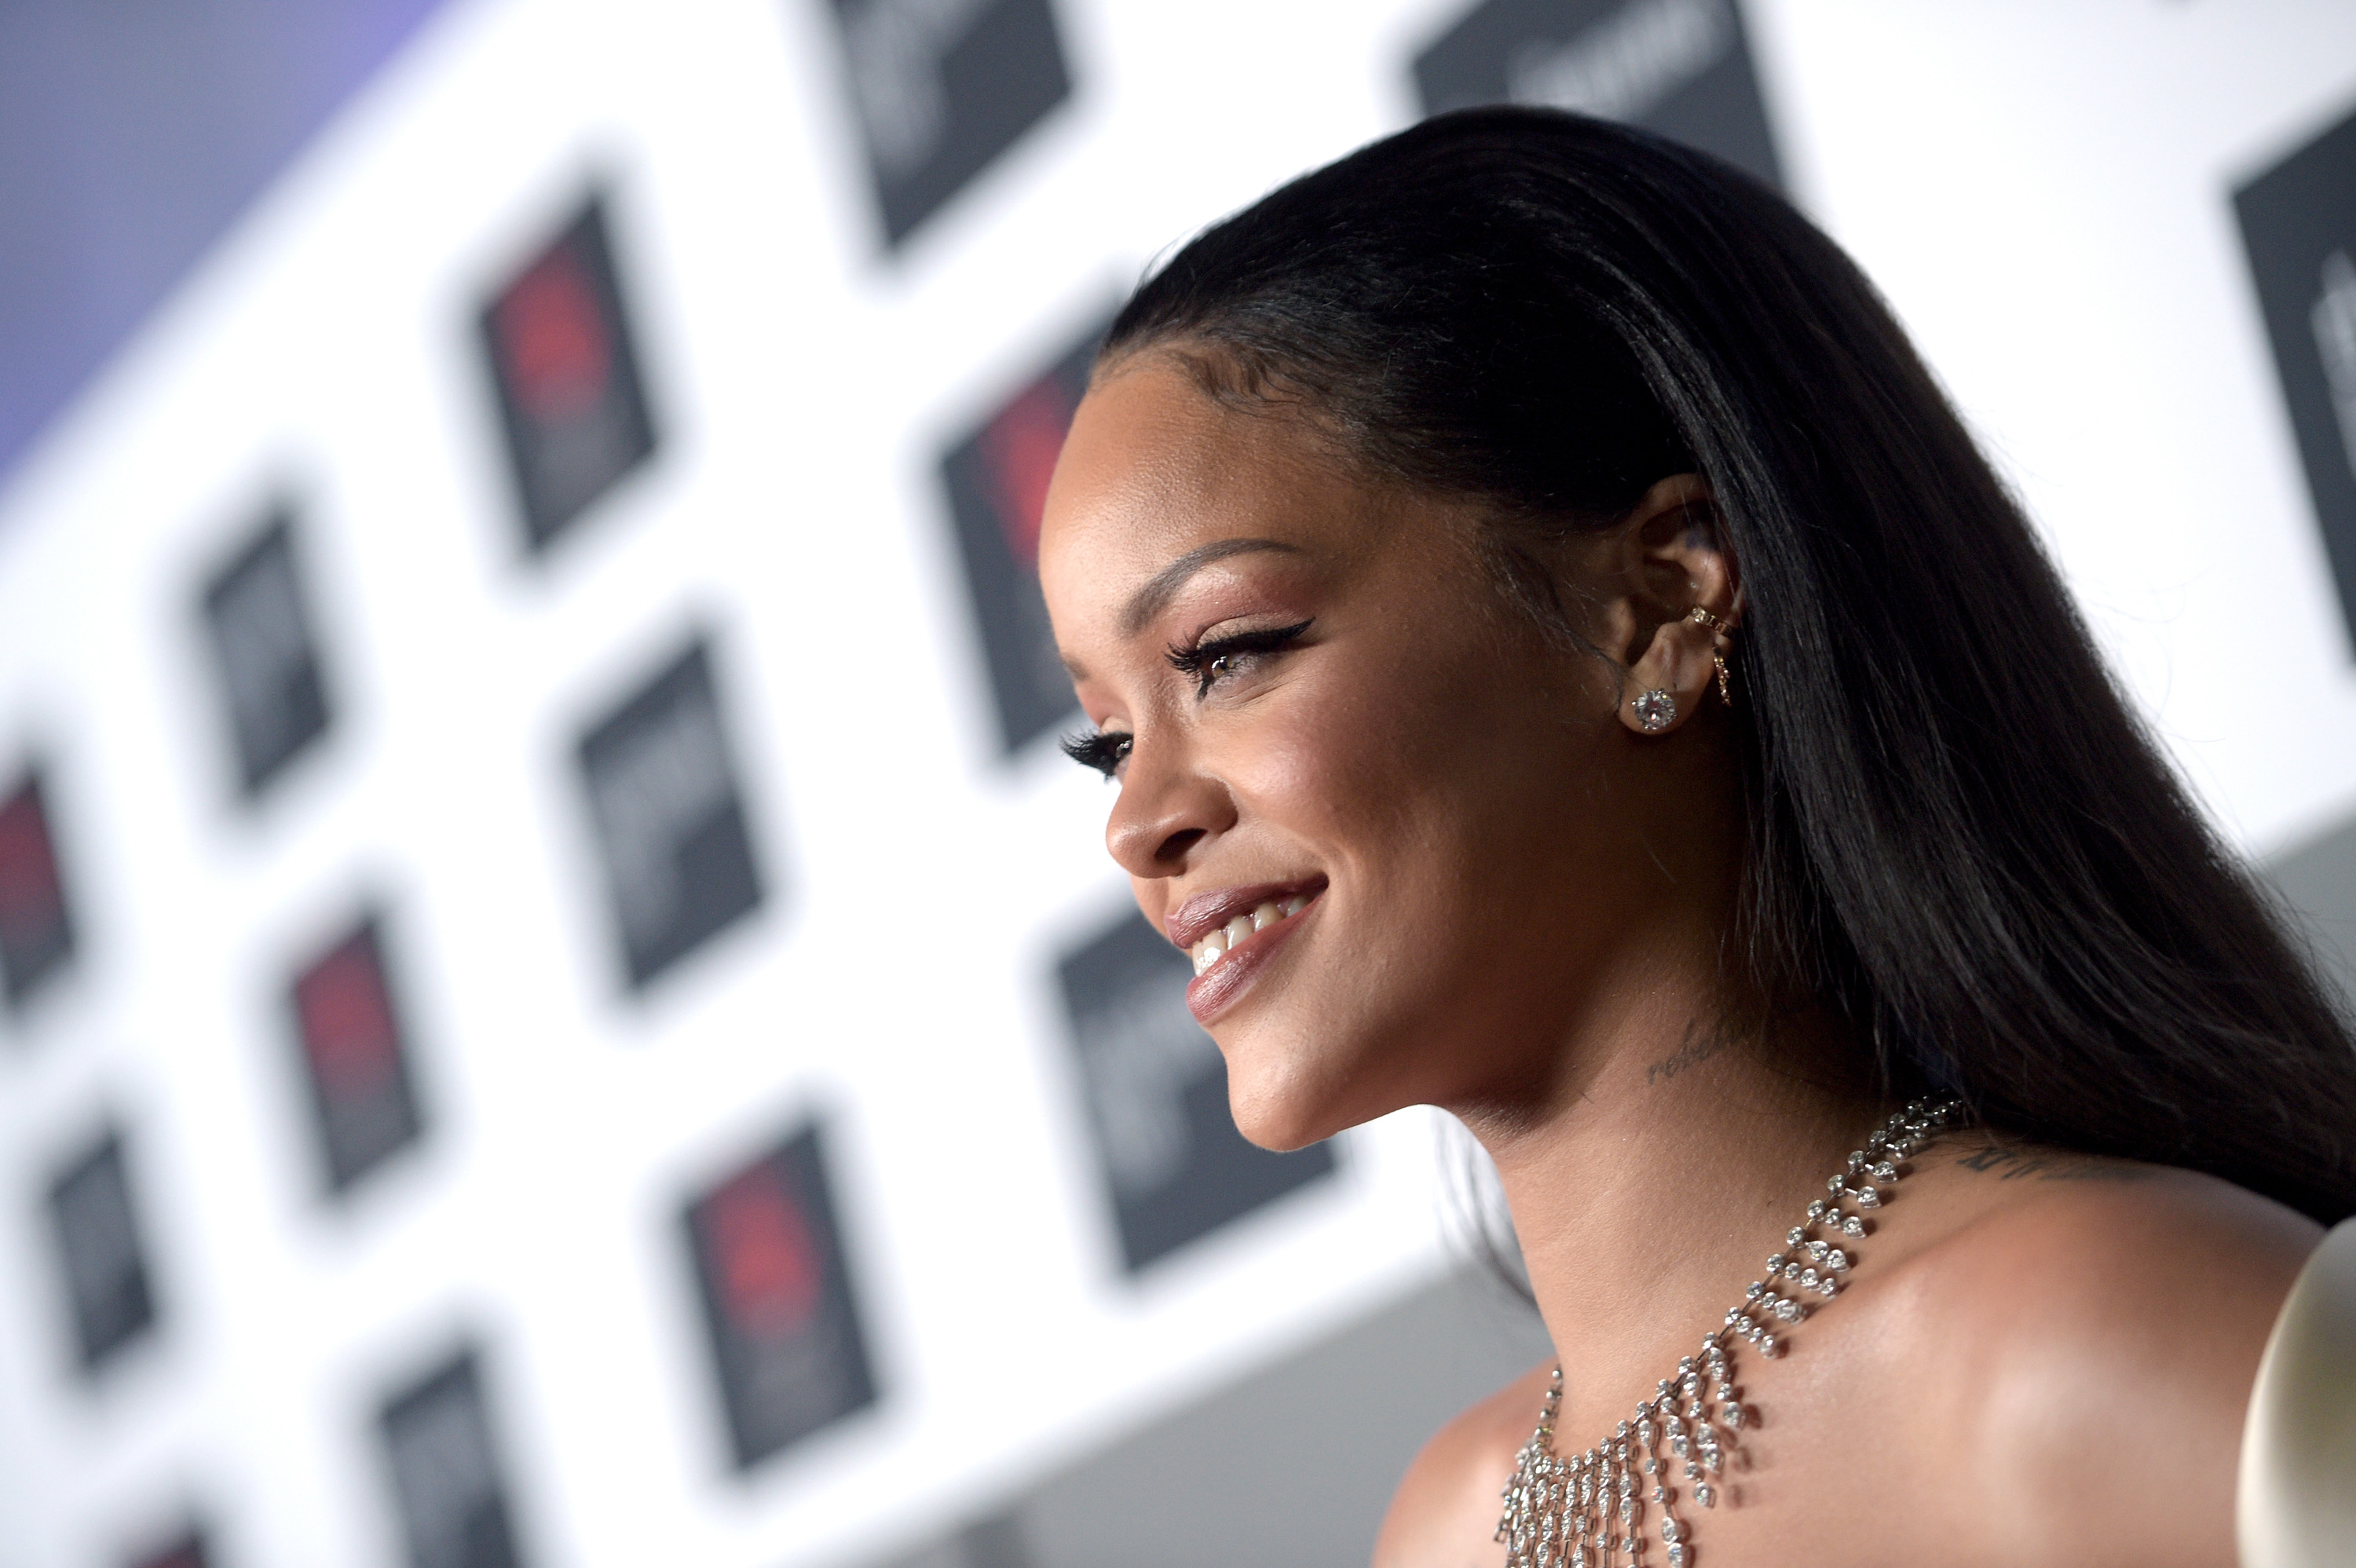 Rihanna attends the 2nd Annual Diamond Ball hosted by Rihanna and The Clara Lionel Foundation at The Barker Hanger on December 10, 2015 in Santa Monica, California.